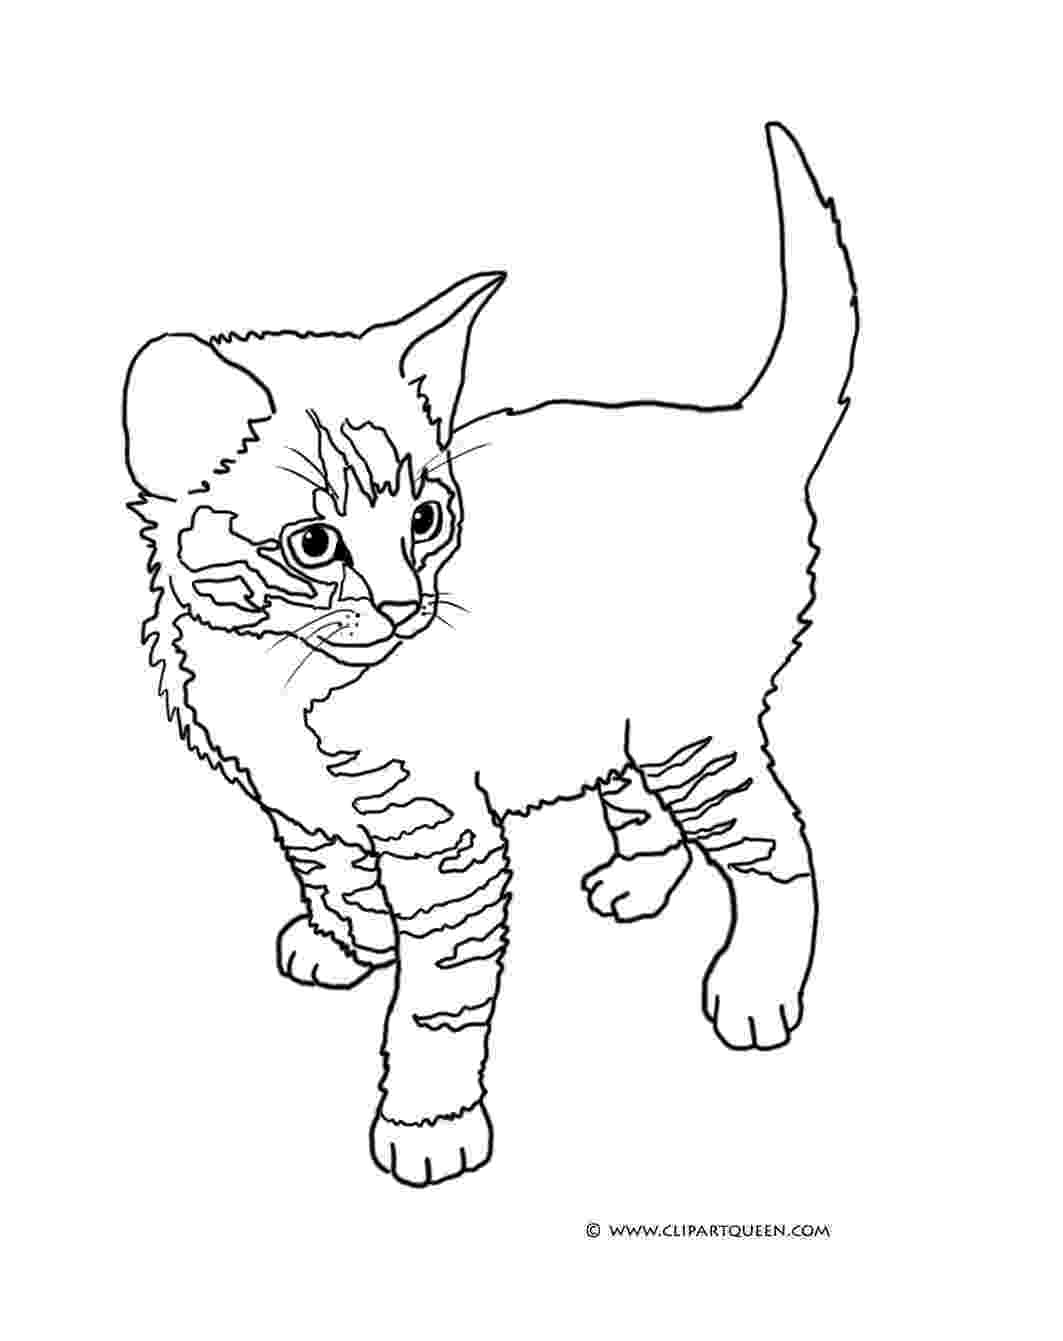 coloring pages of cats cute cat coloring pages to download and print for free of coloring pages cats